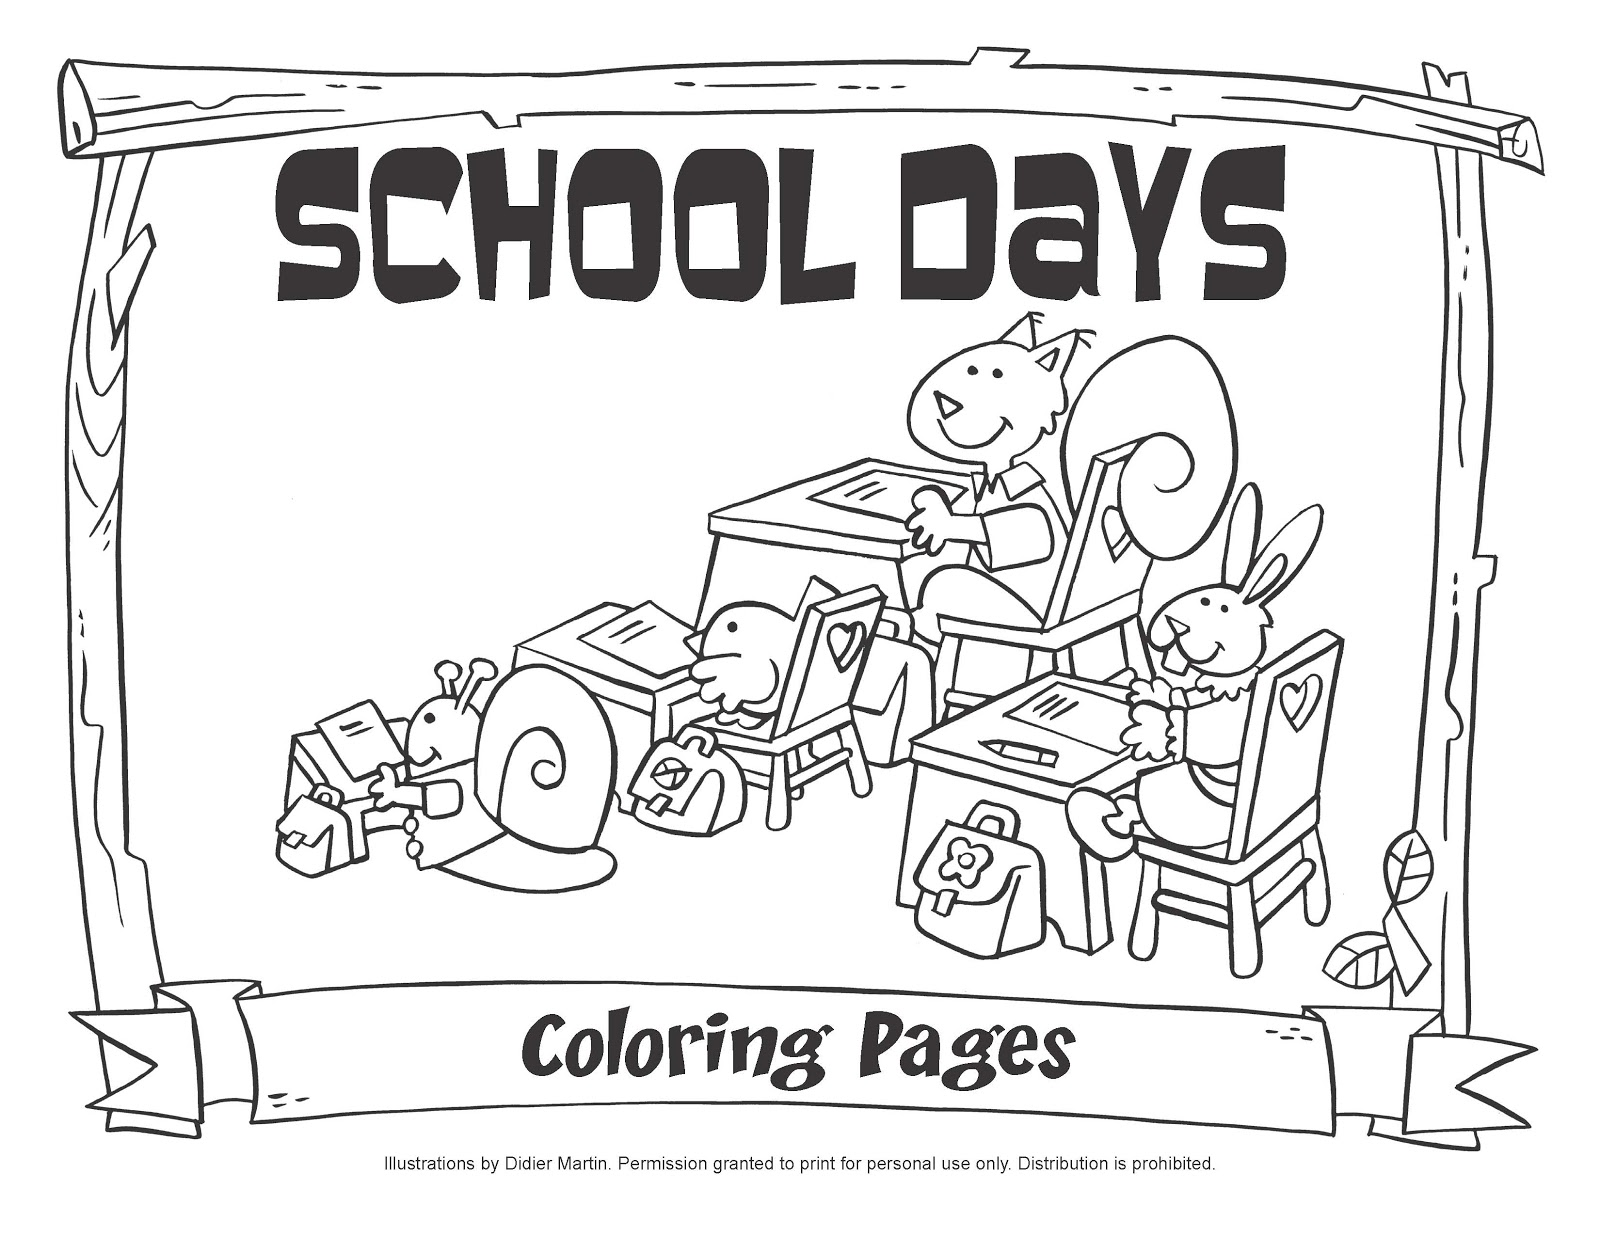 Pupils listening to their teacher coloring pages - Hellokids.com | 1236x1600